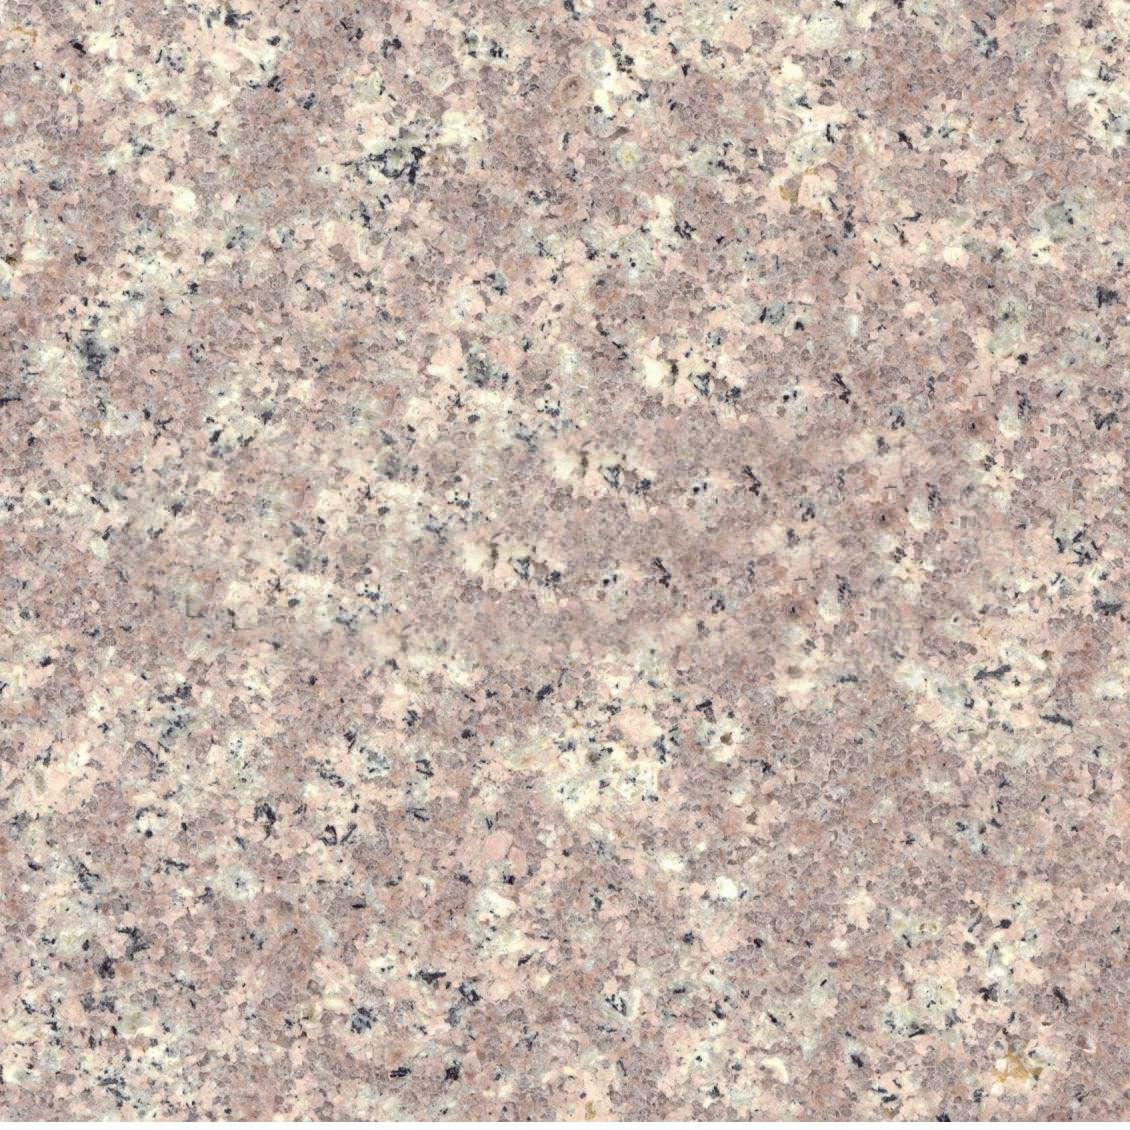 pink granit texture, texture granite, download photo, background